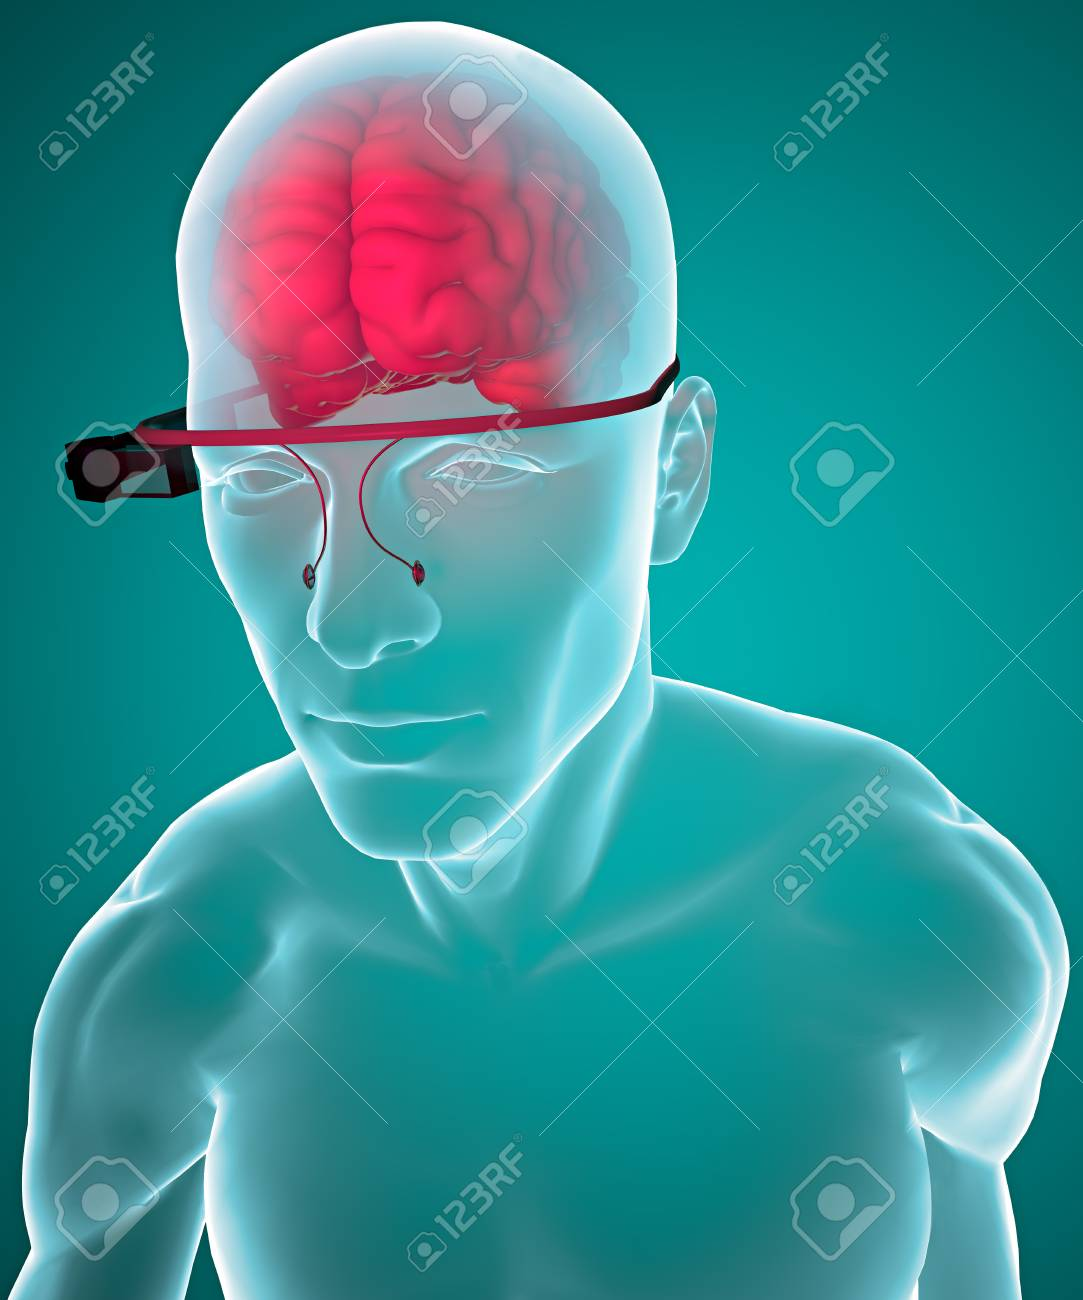 Interactive Glasses And Brain, Anatomy Stock Photo, Picture And ...